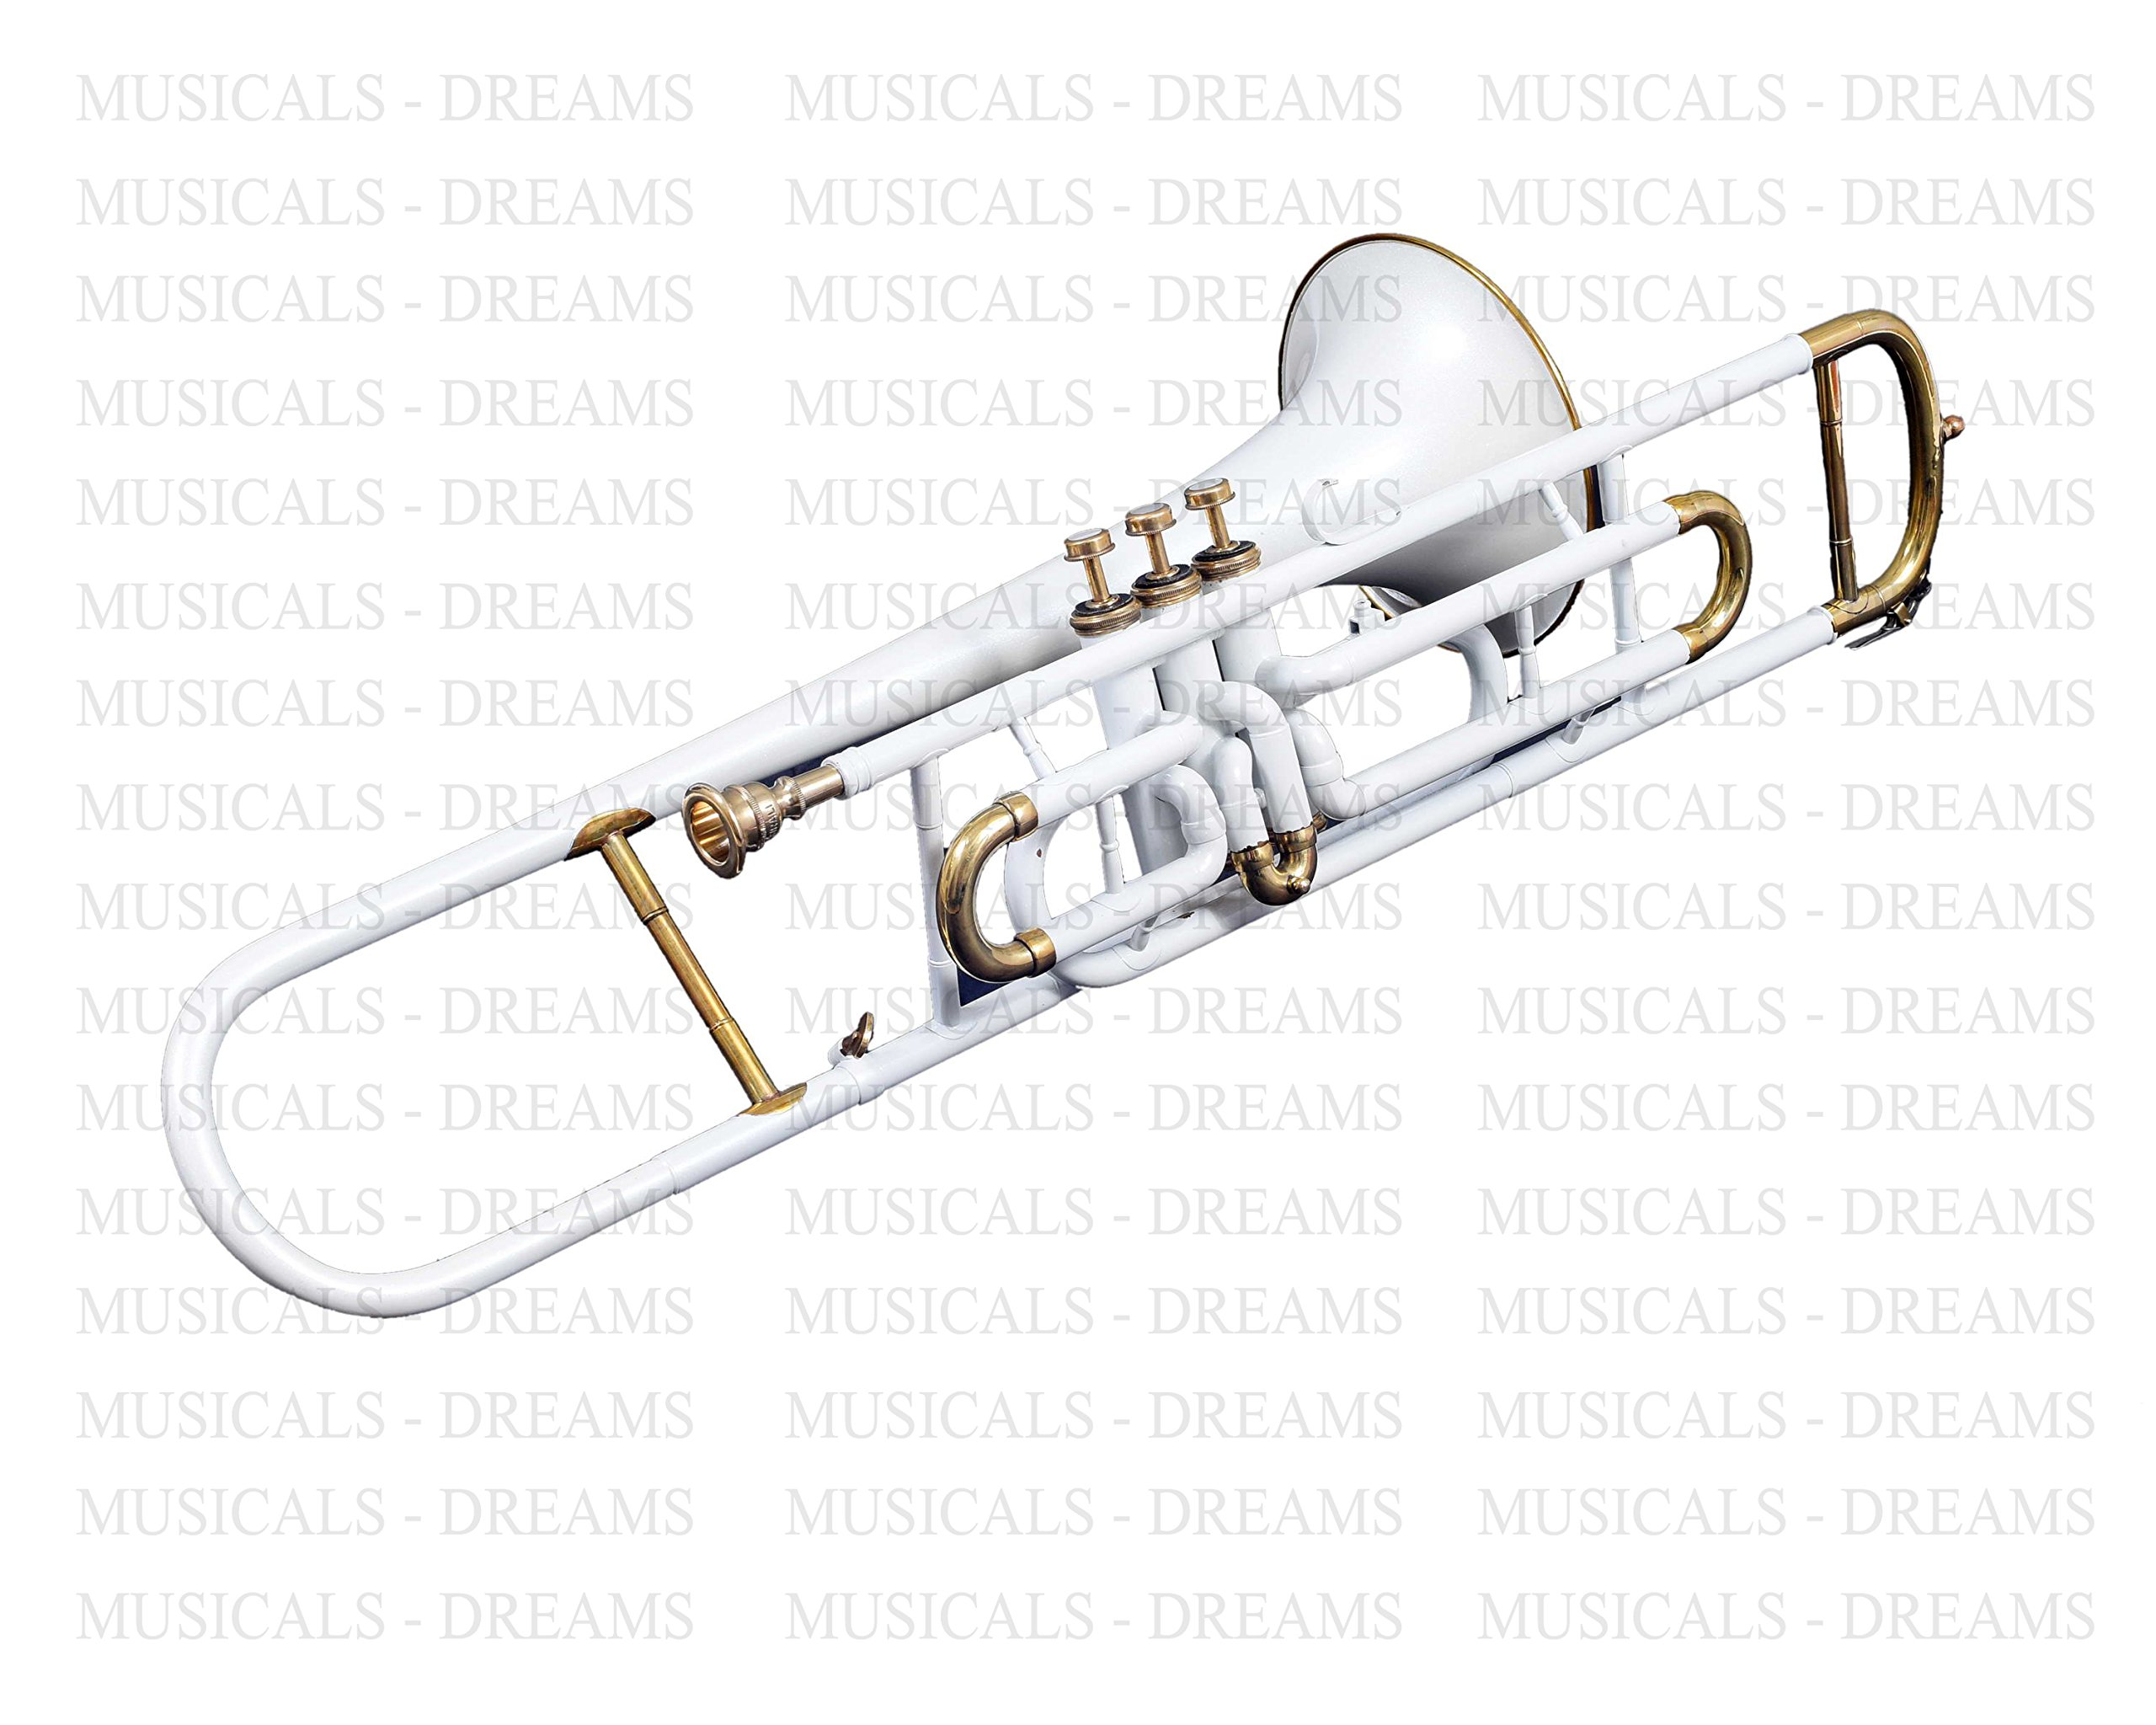 NASIR ALI TROMBONE Bb PITCH @10% DISC. WHITE WITH FREE CASE + MP + SHIP